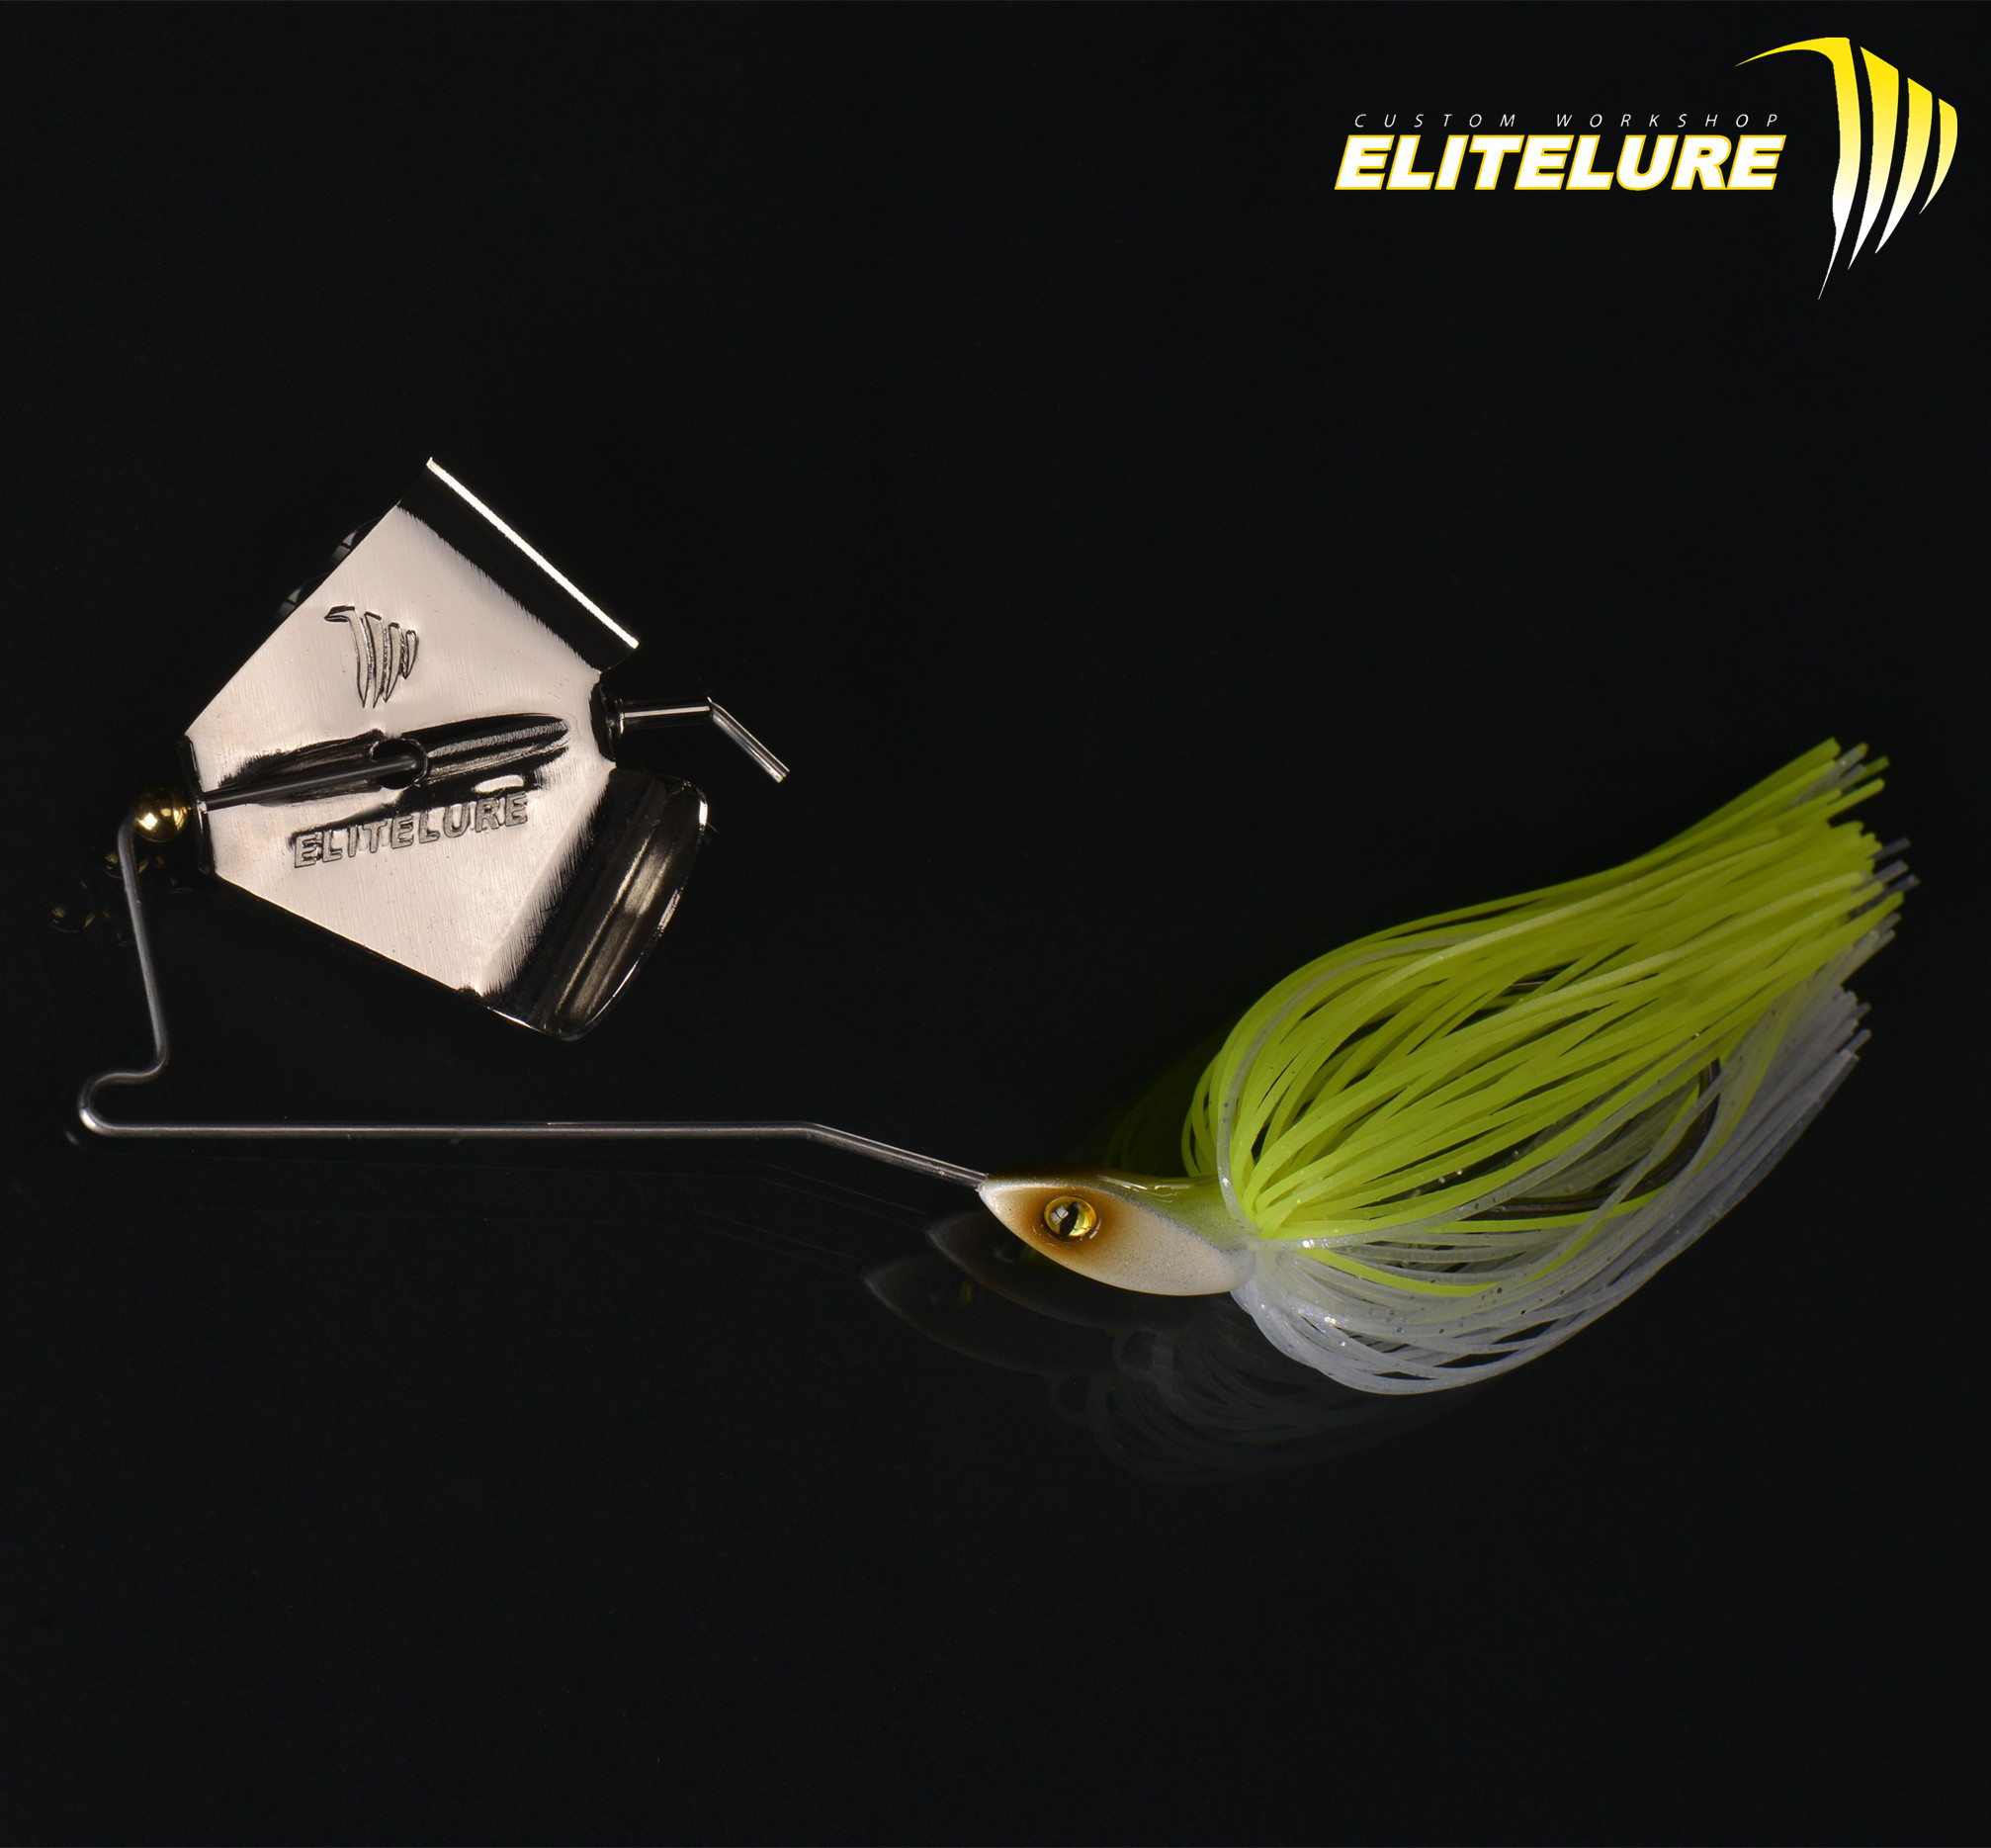 Elitelure Profelis Worm 8SF Soft Fishing Lures Worm Bass Trout Shad Swim Bait Baits, Lures & Flies Spinners & Spinnerbaits